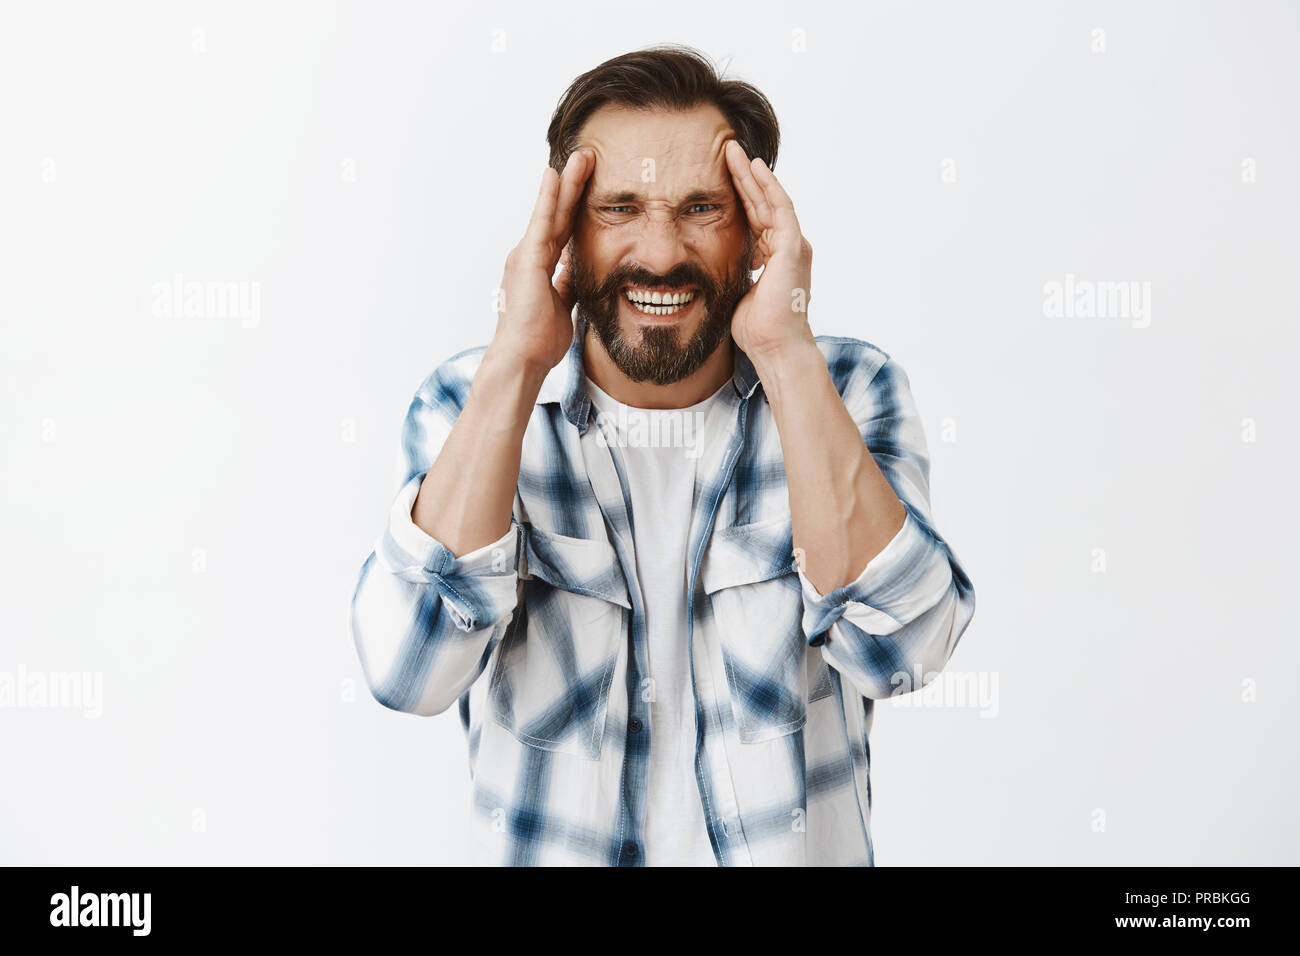 Turn pain off please. Distressed adult bearded guy suffering from painful migraine or headache, grimacing from discomfort, holding hands on temples and staring with unhappy upset look at camera - Stock Image